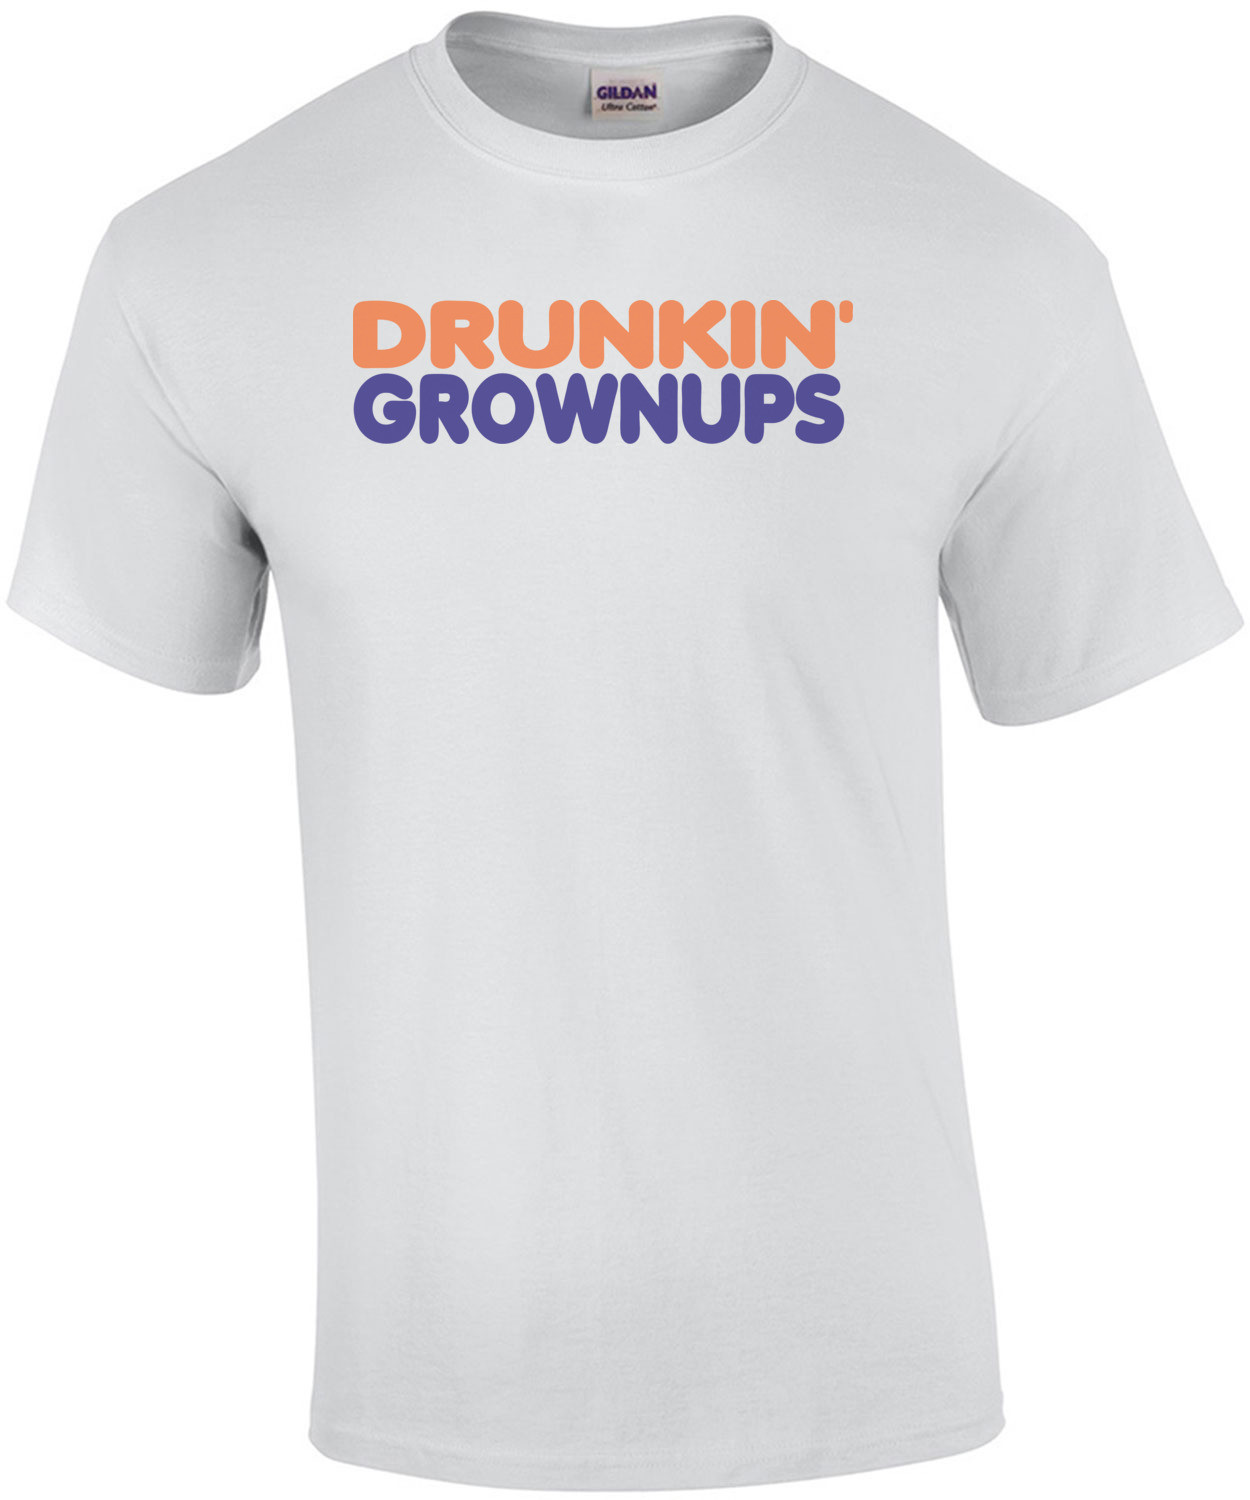 Drunkin' Grownups - Parody T-shirt